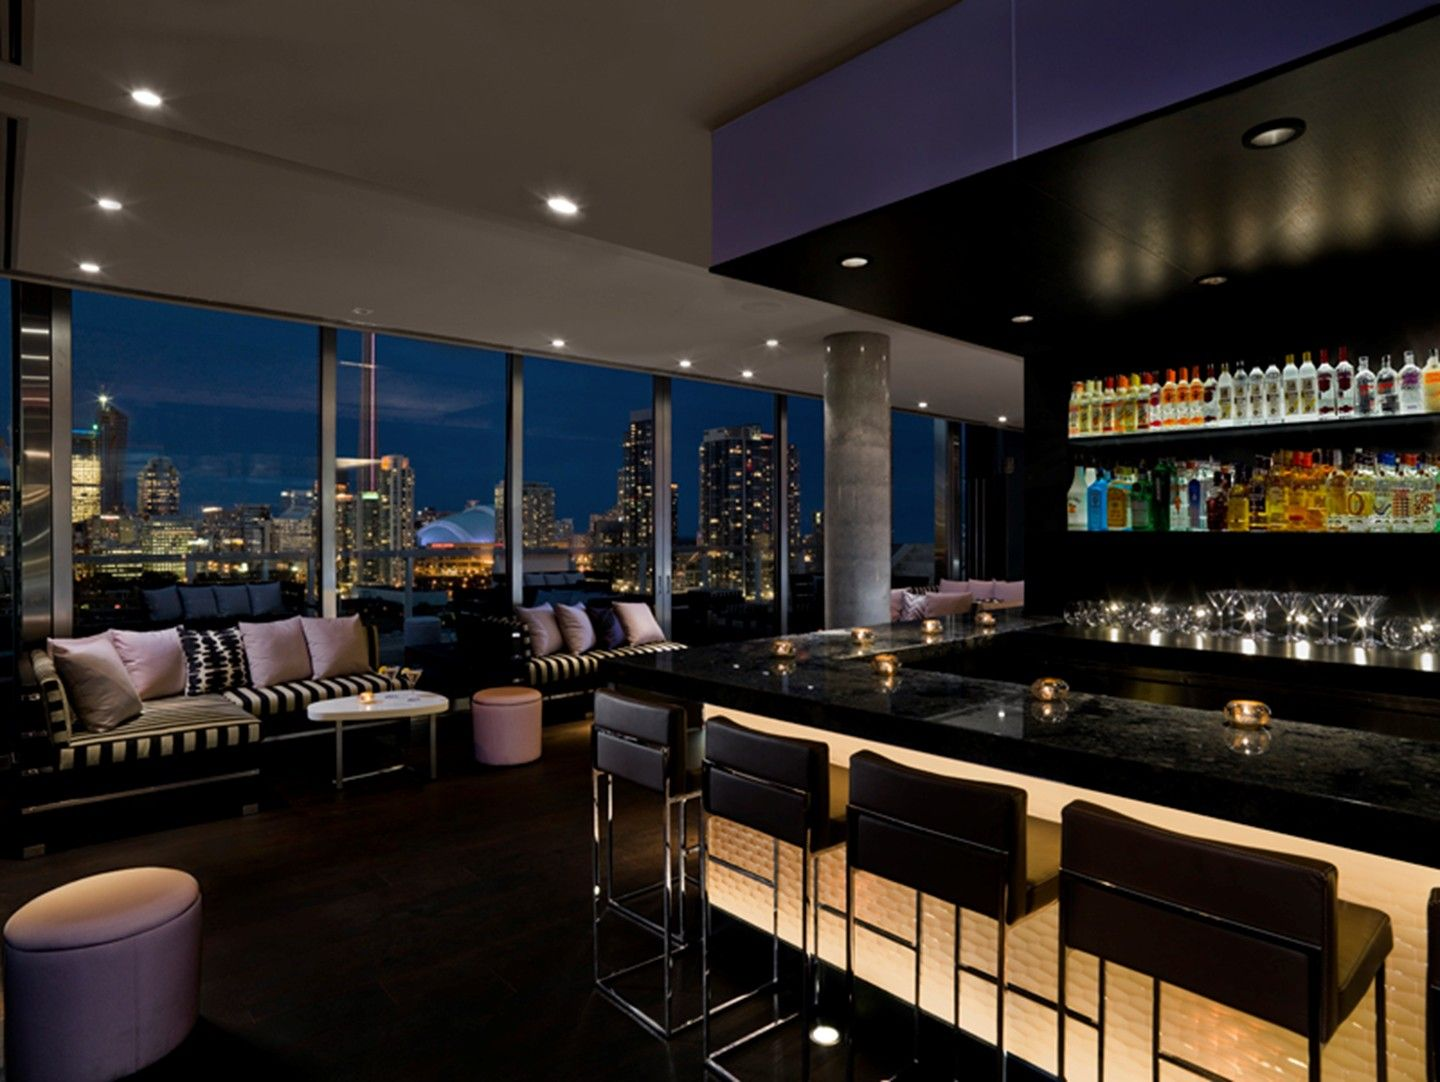 Thompson Toronto' Rooftop Bar And Lounge Offers Views Of